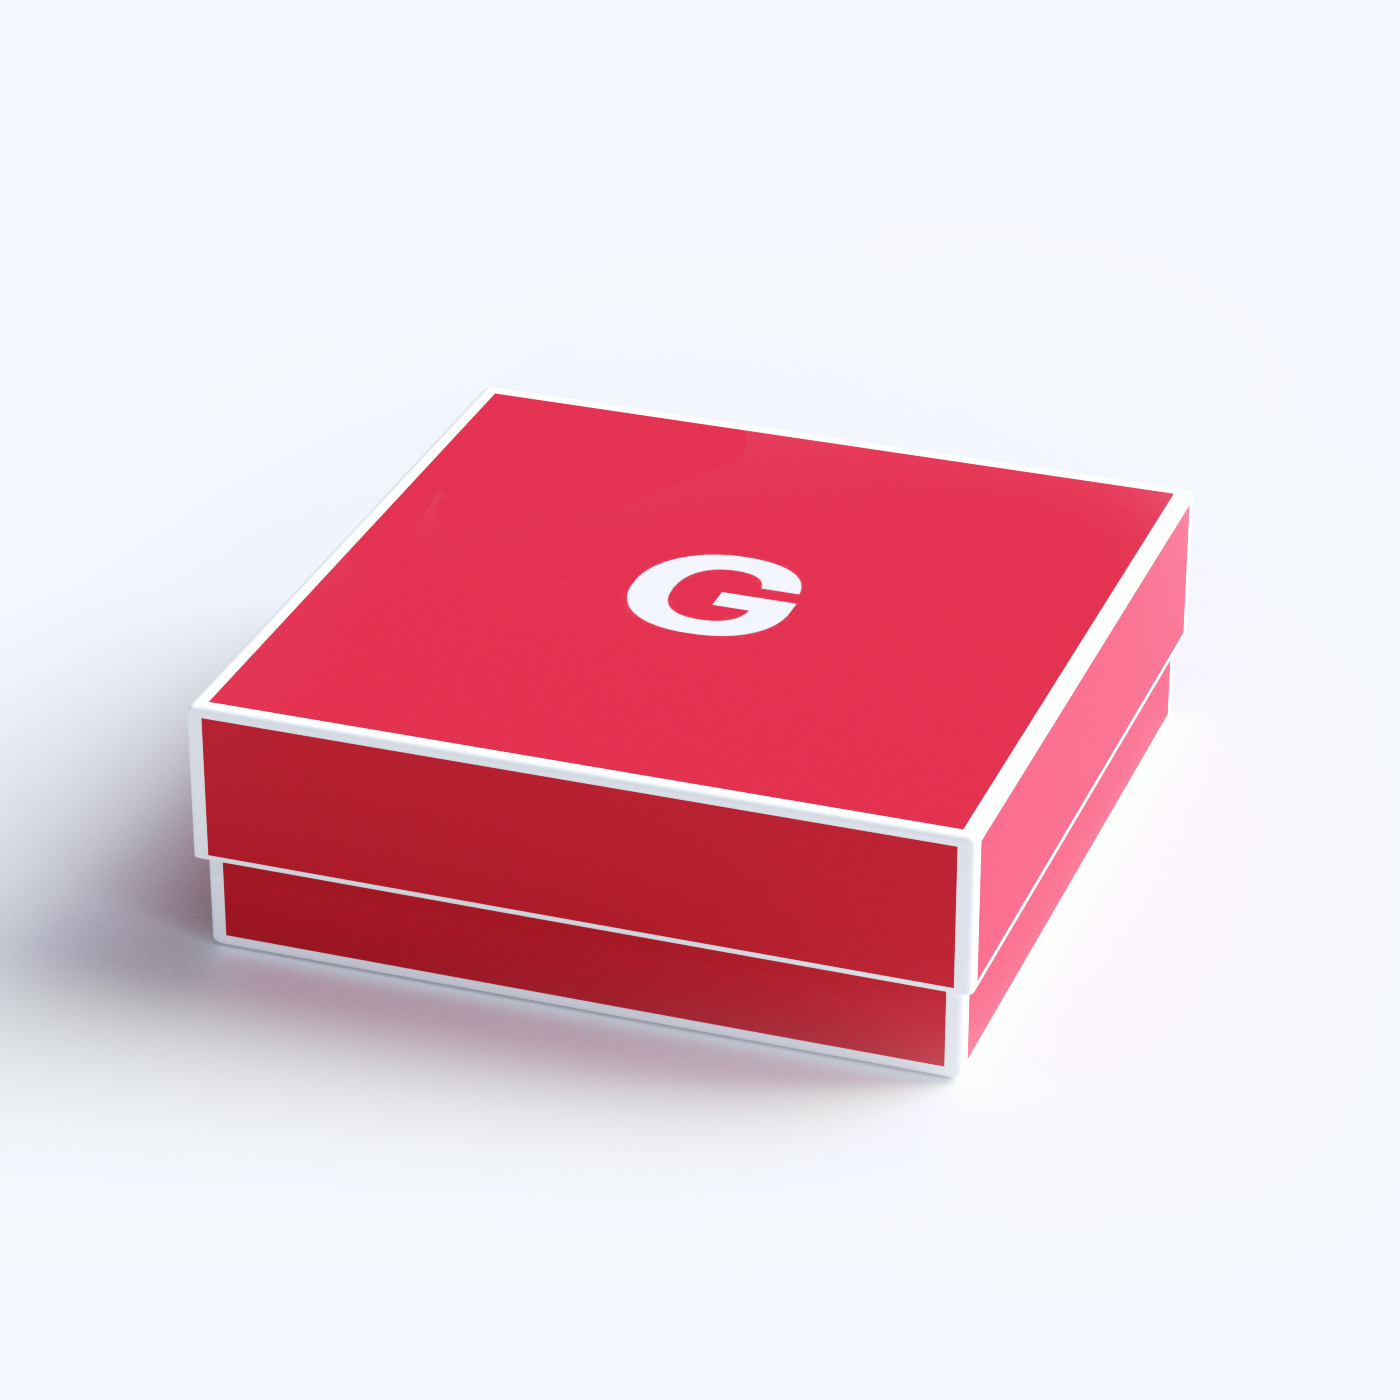 New Red Packaging